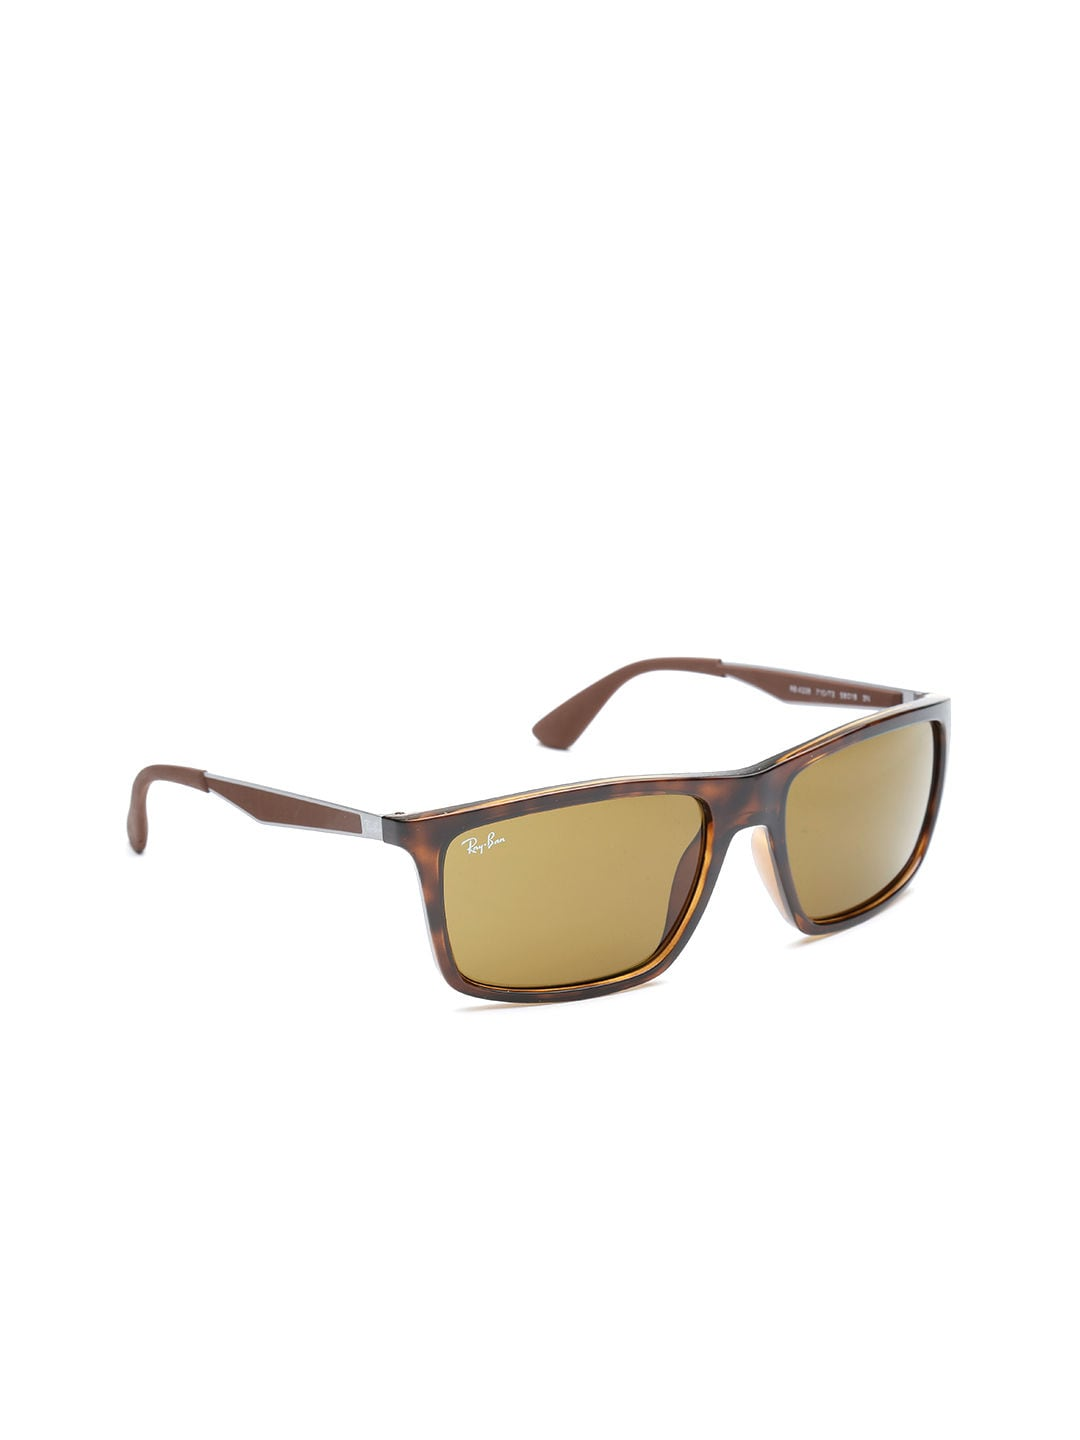 49e1fe20d2 Ray Ban - Buy Ray Ban Sunglasses   Frames Online In India